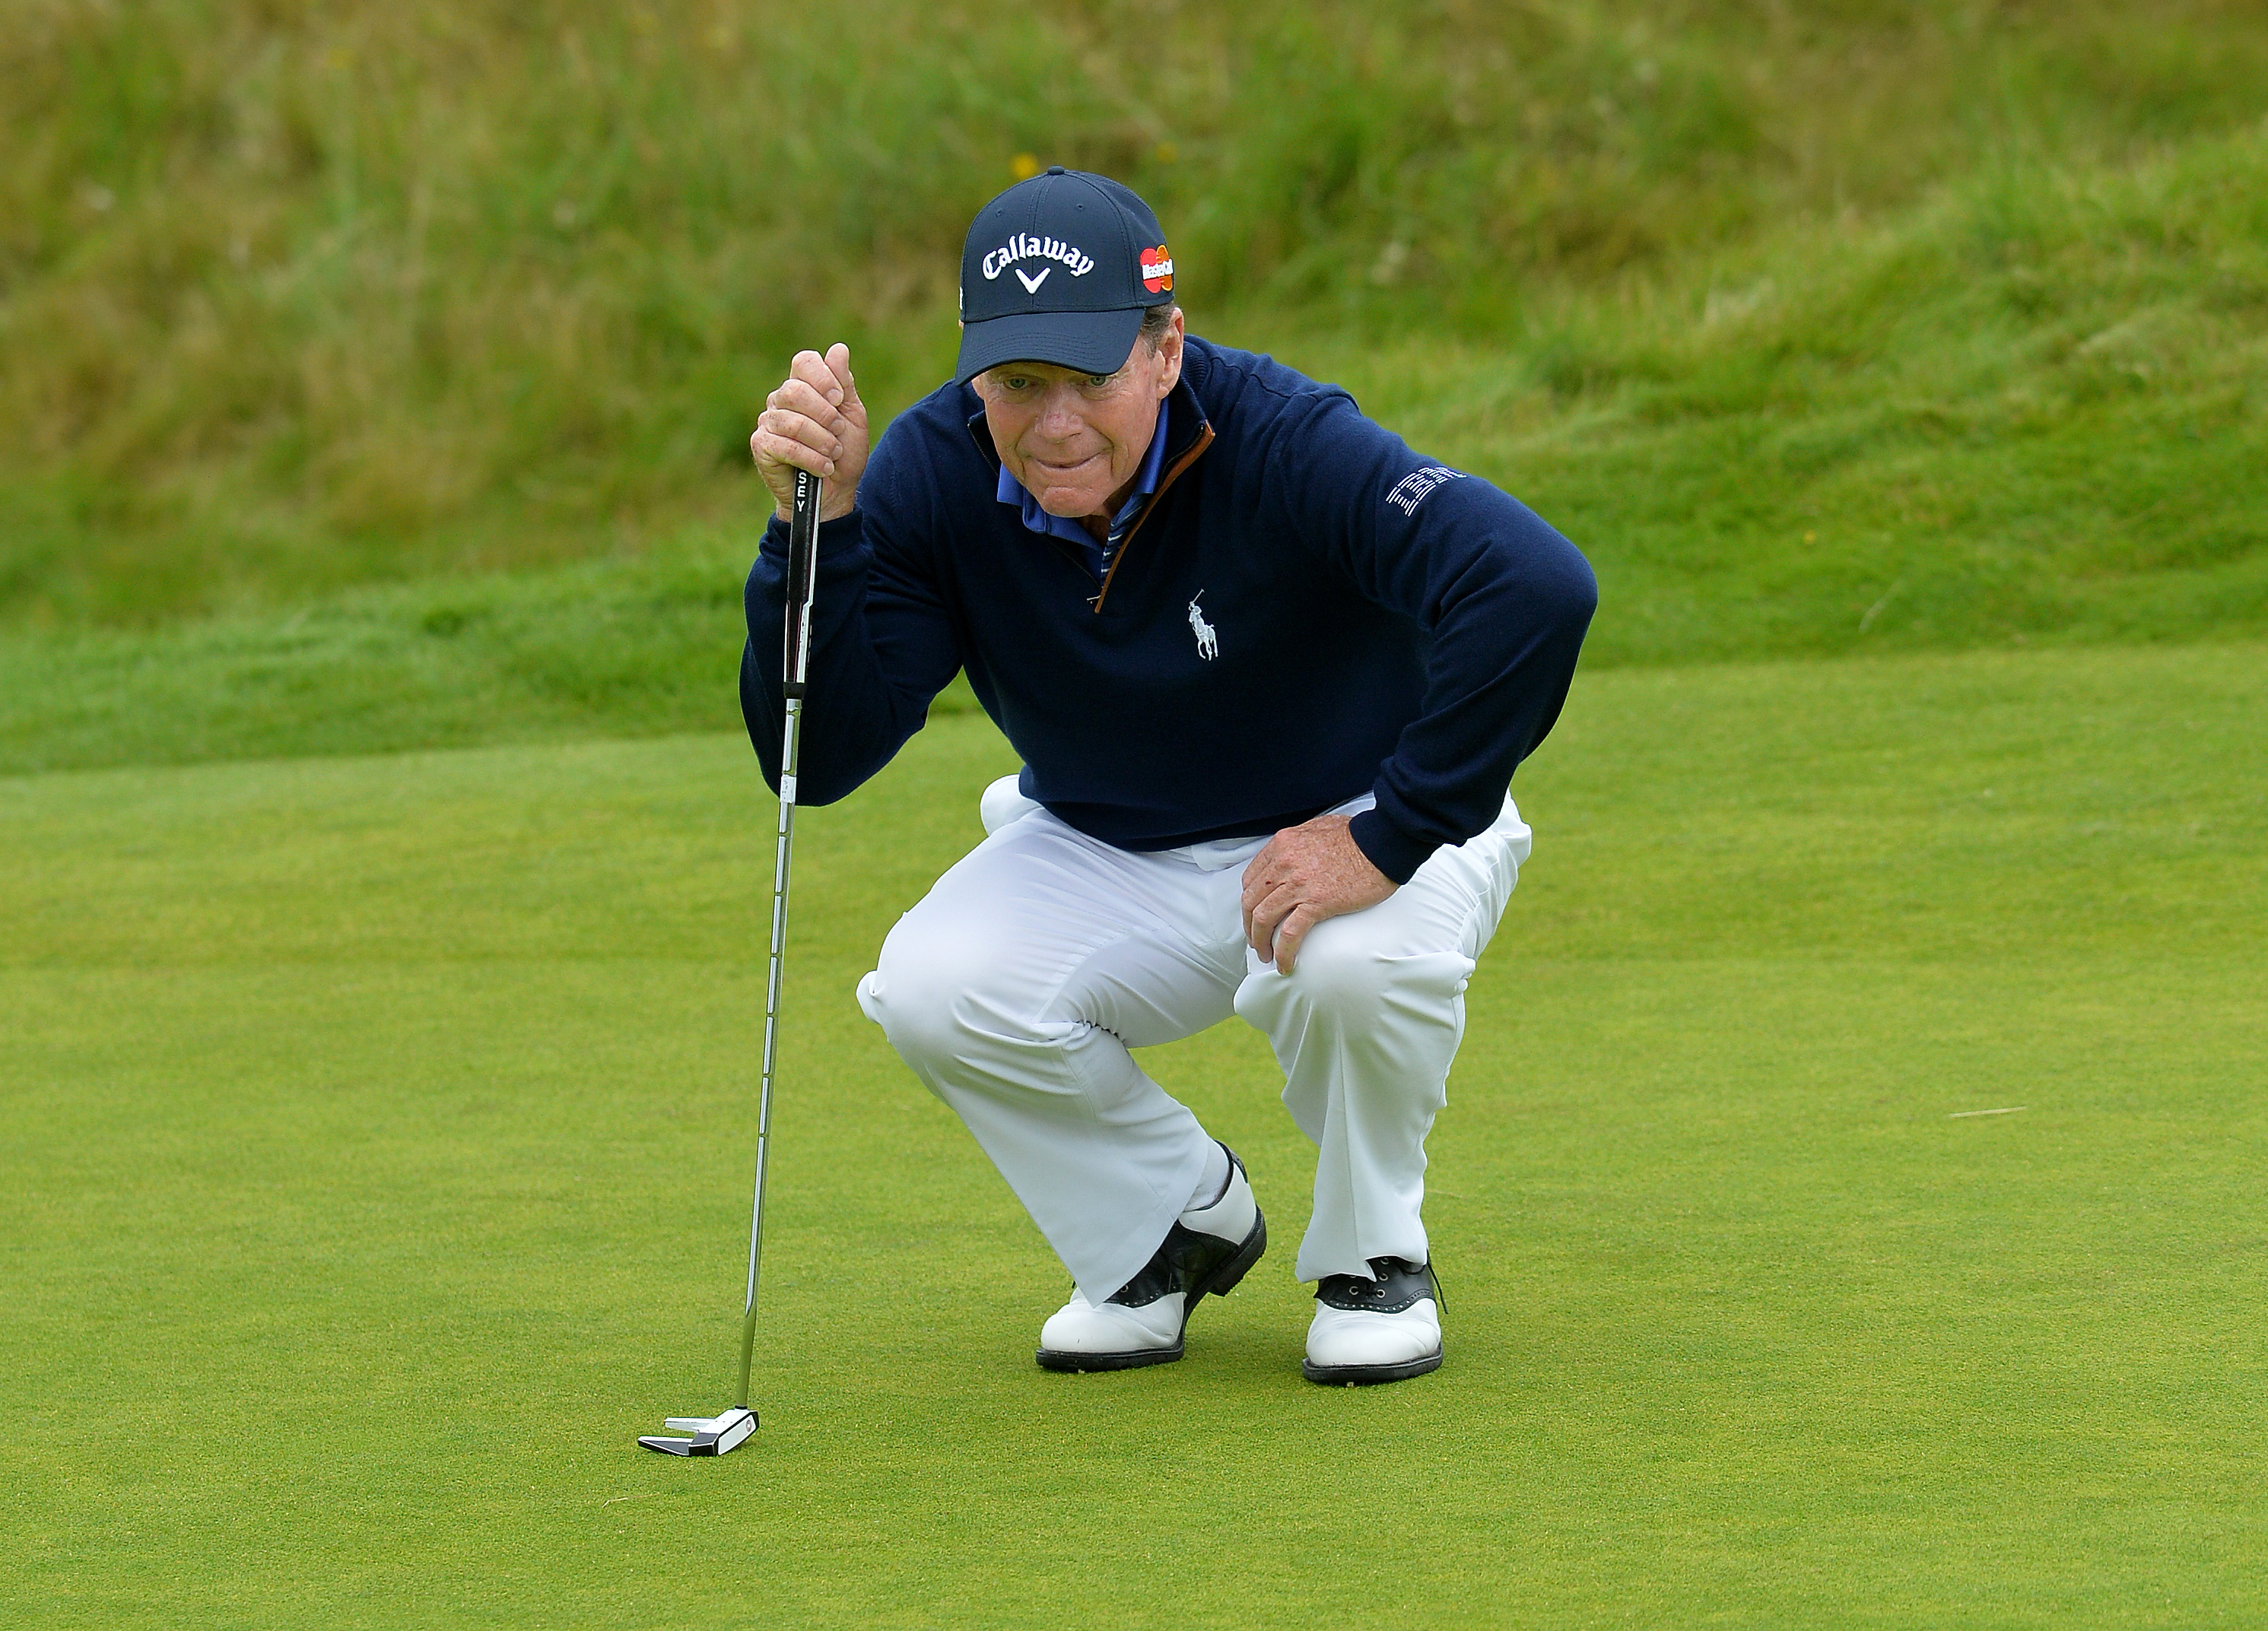 Tom Watson returns to the Old Course for the Senior Open later this month.